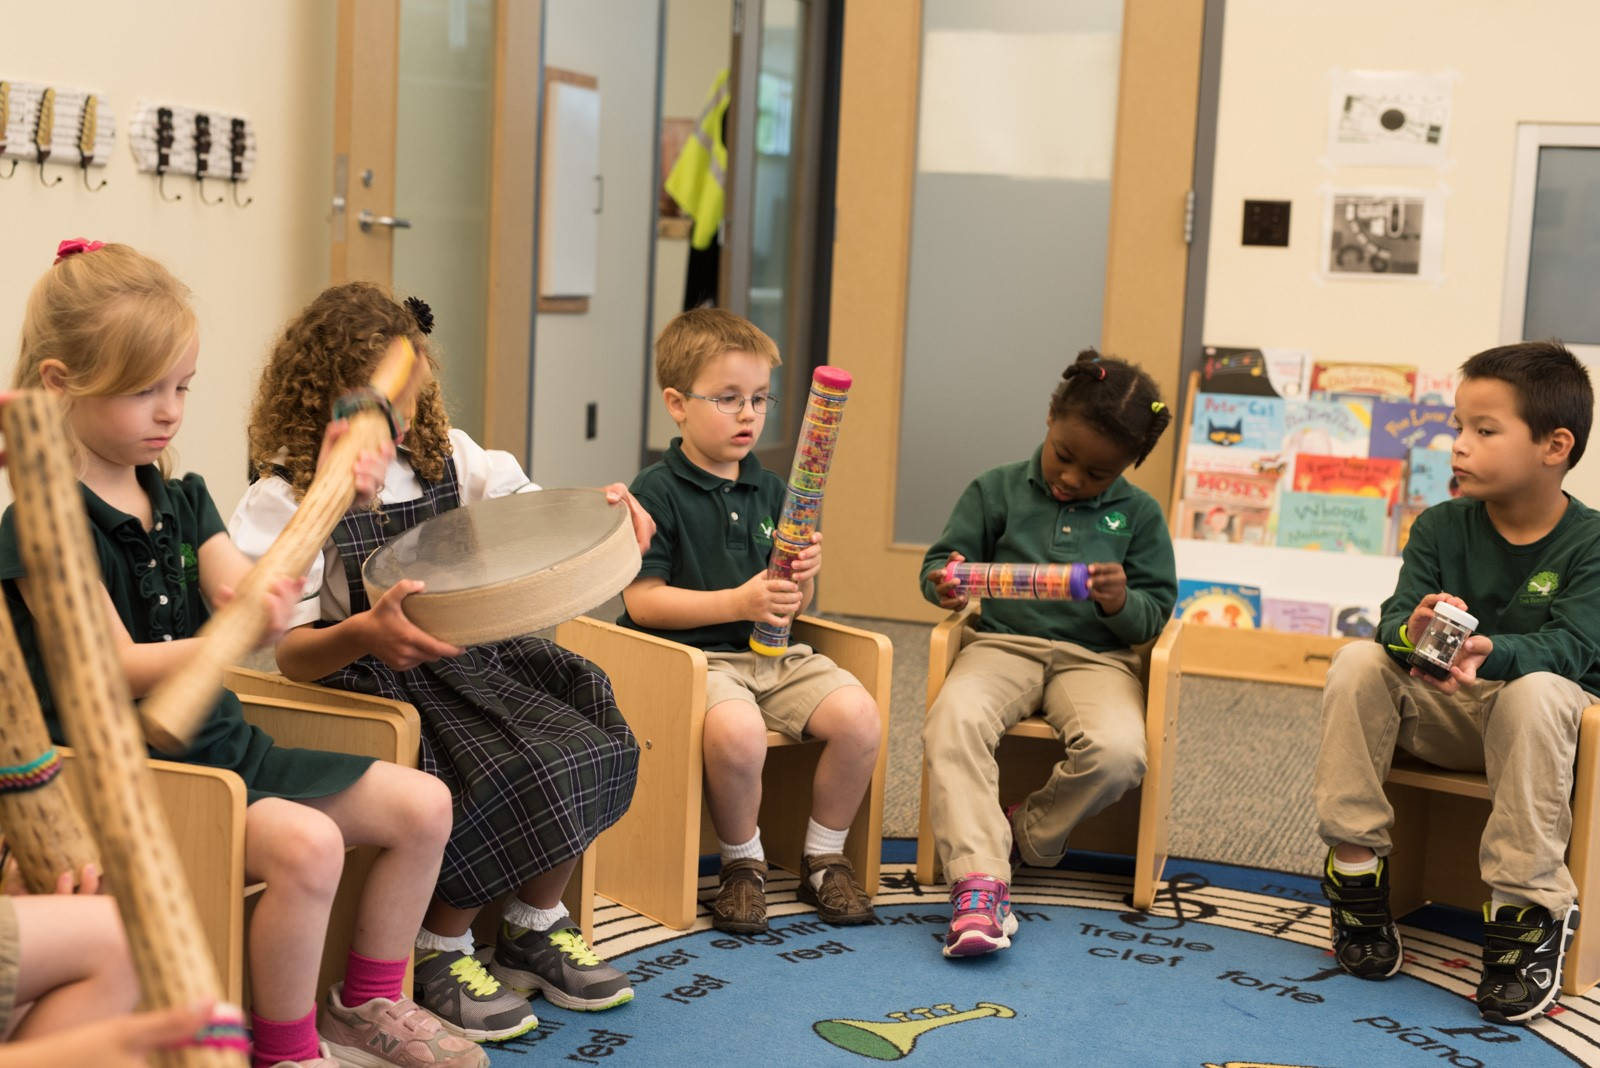 The Parish School music therapist works with a class of young children